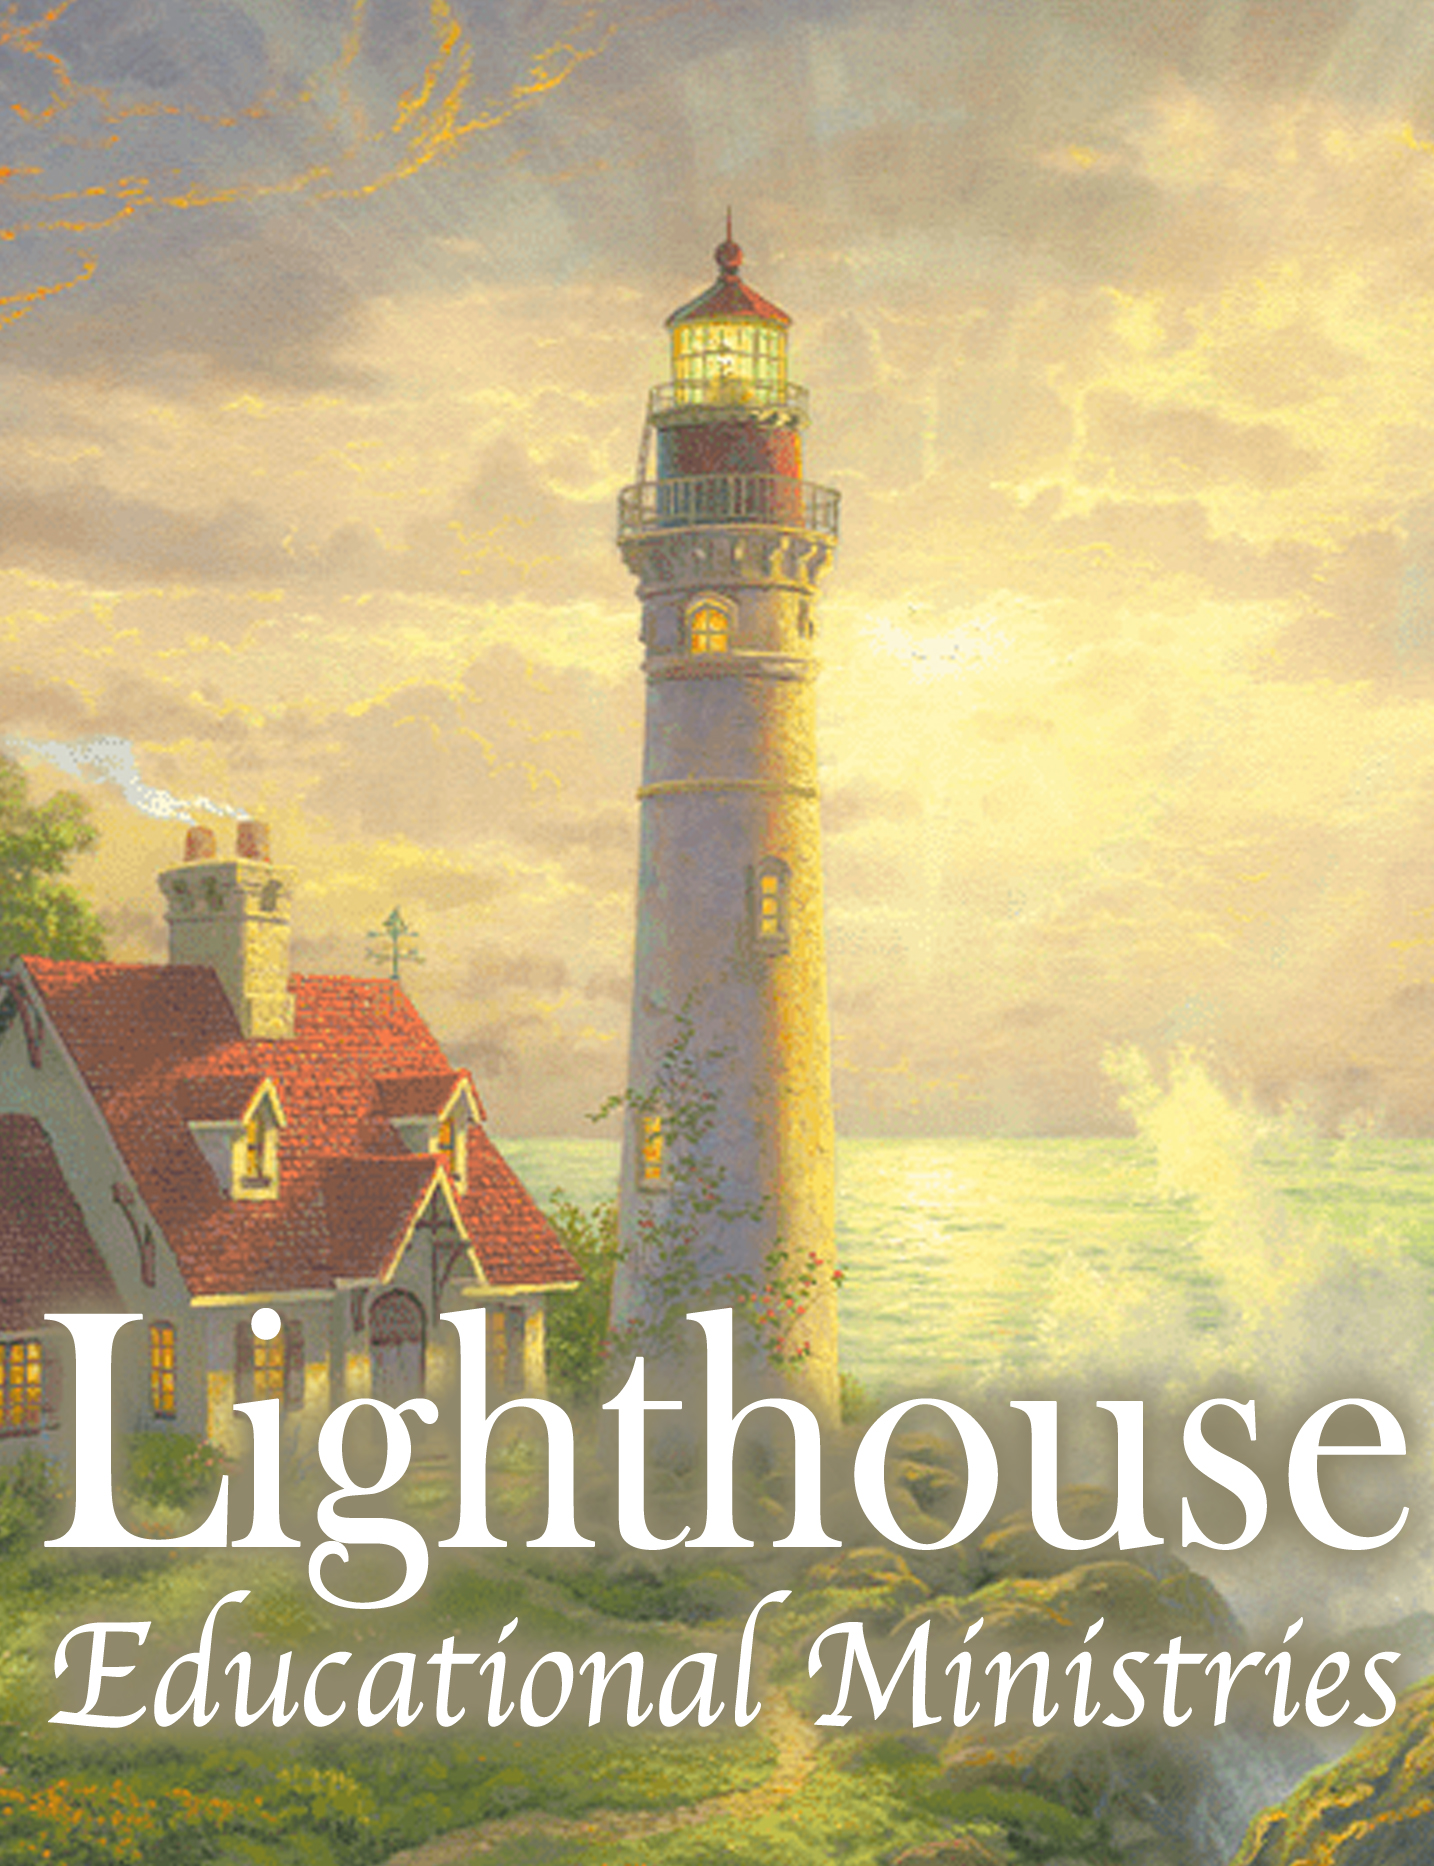 Lighthouse Educational Ministries